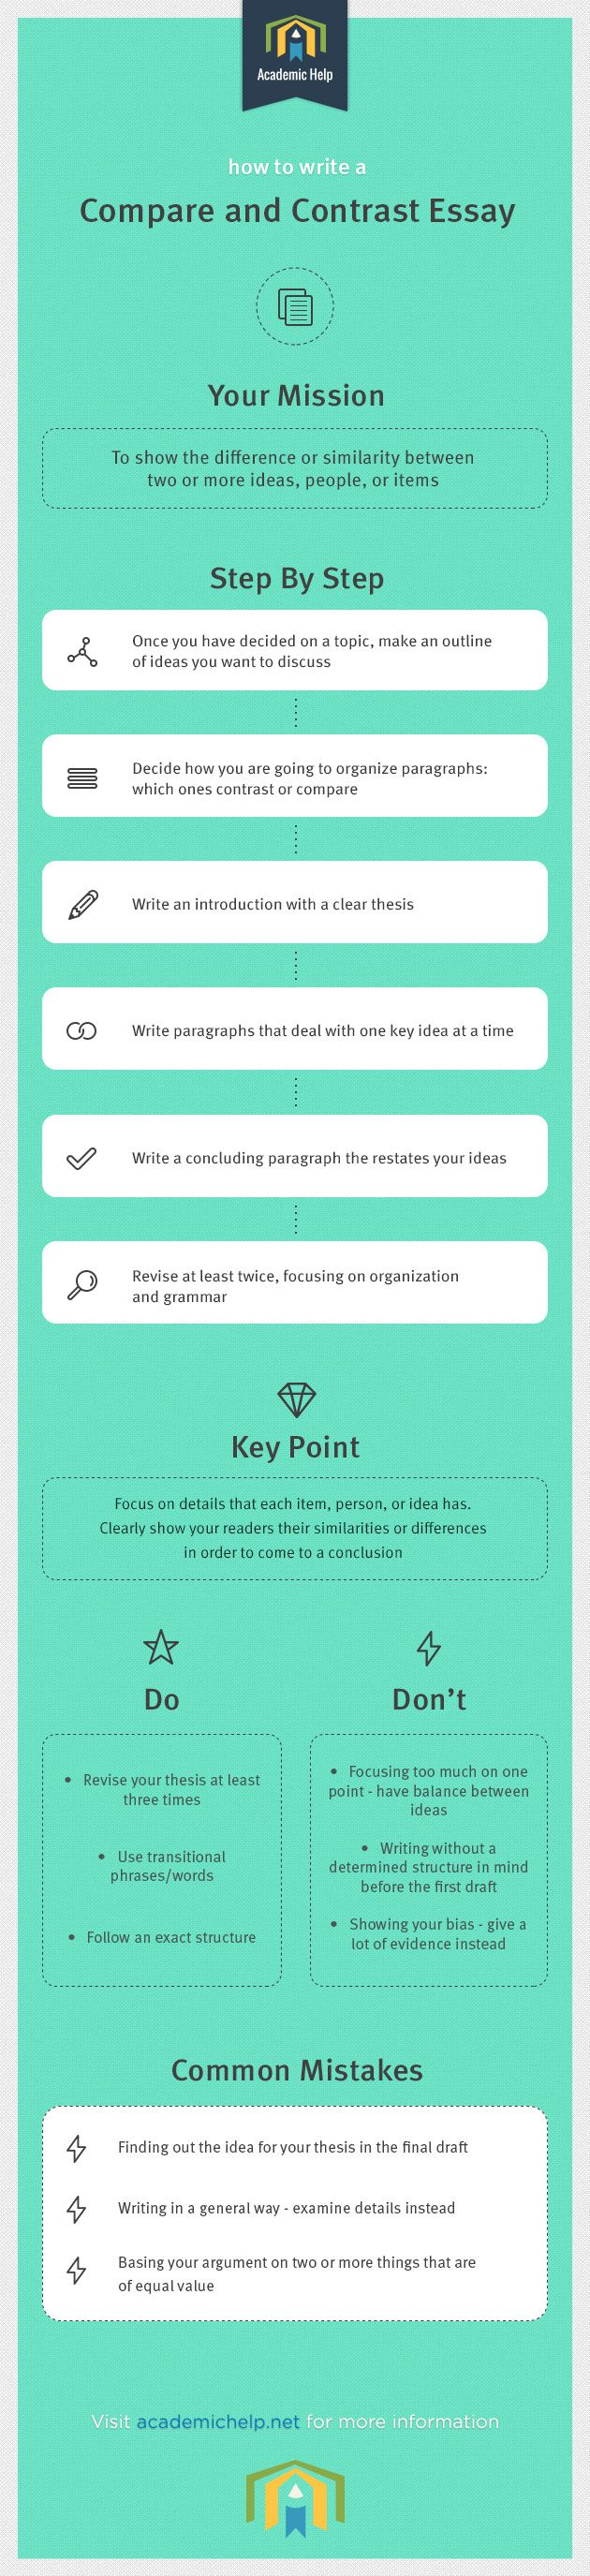 best images about reading compare and contrast infographics on how to write a compare and contrast essay